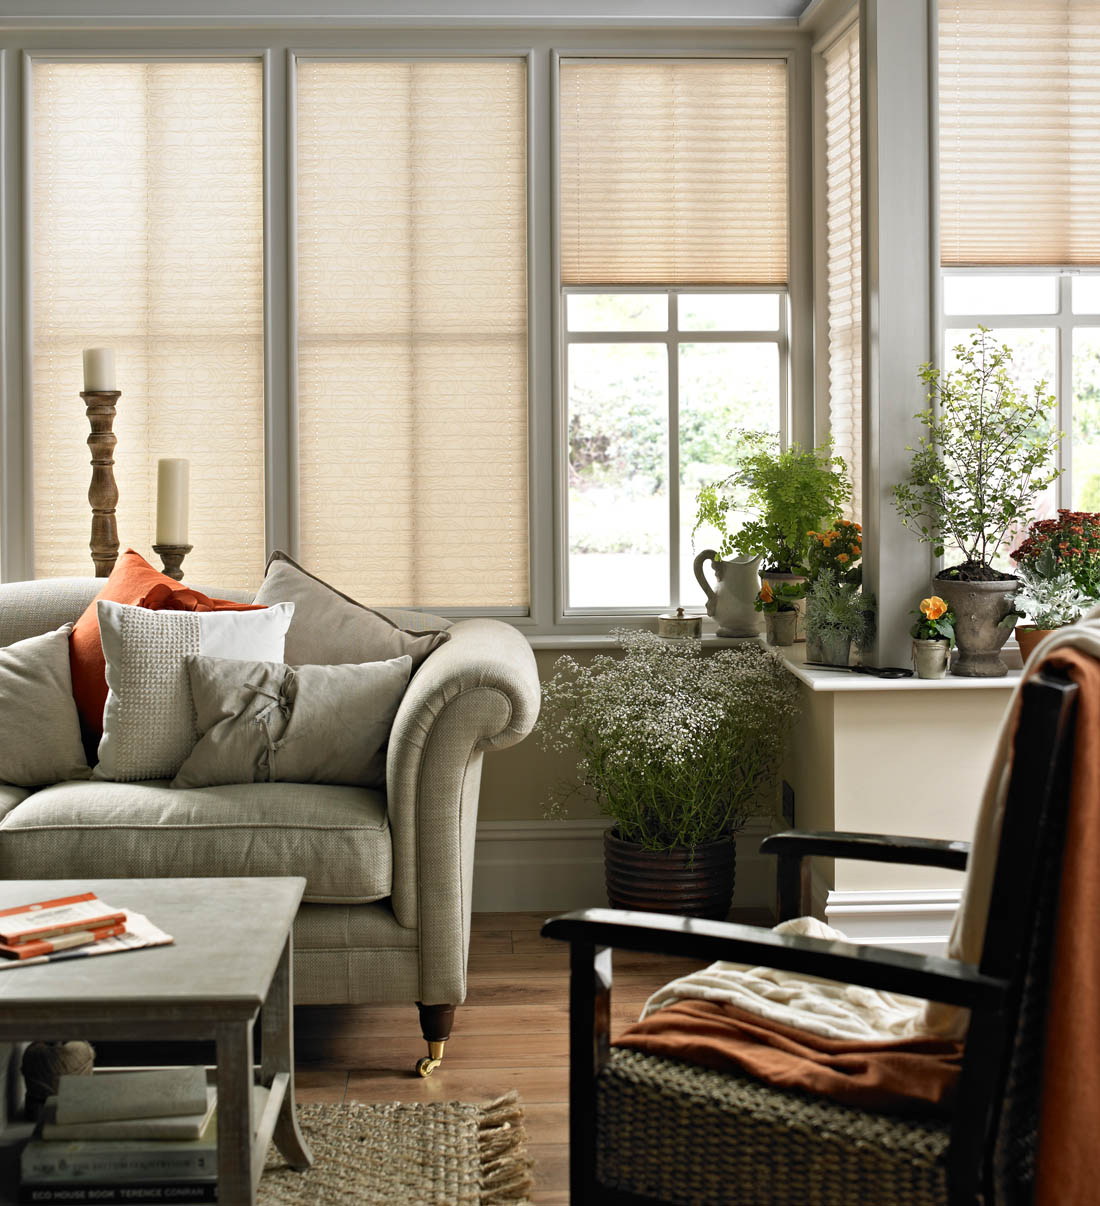 How to make your conservatory a part of your home | Conservatory blinds and shutters | Apartment Apothecary